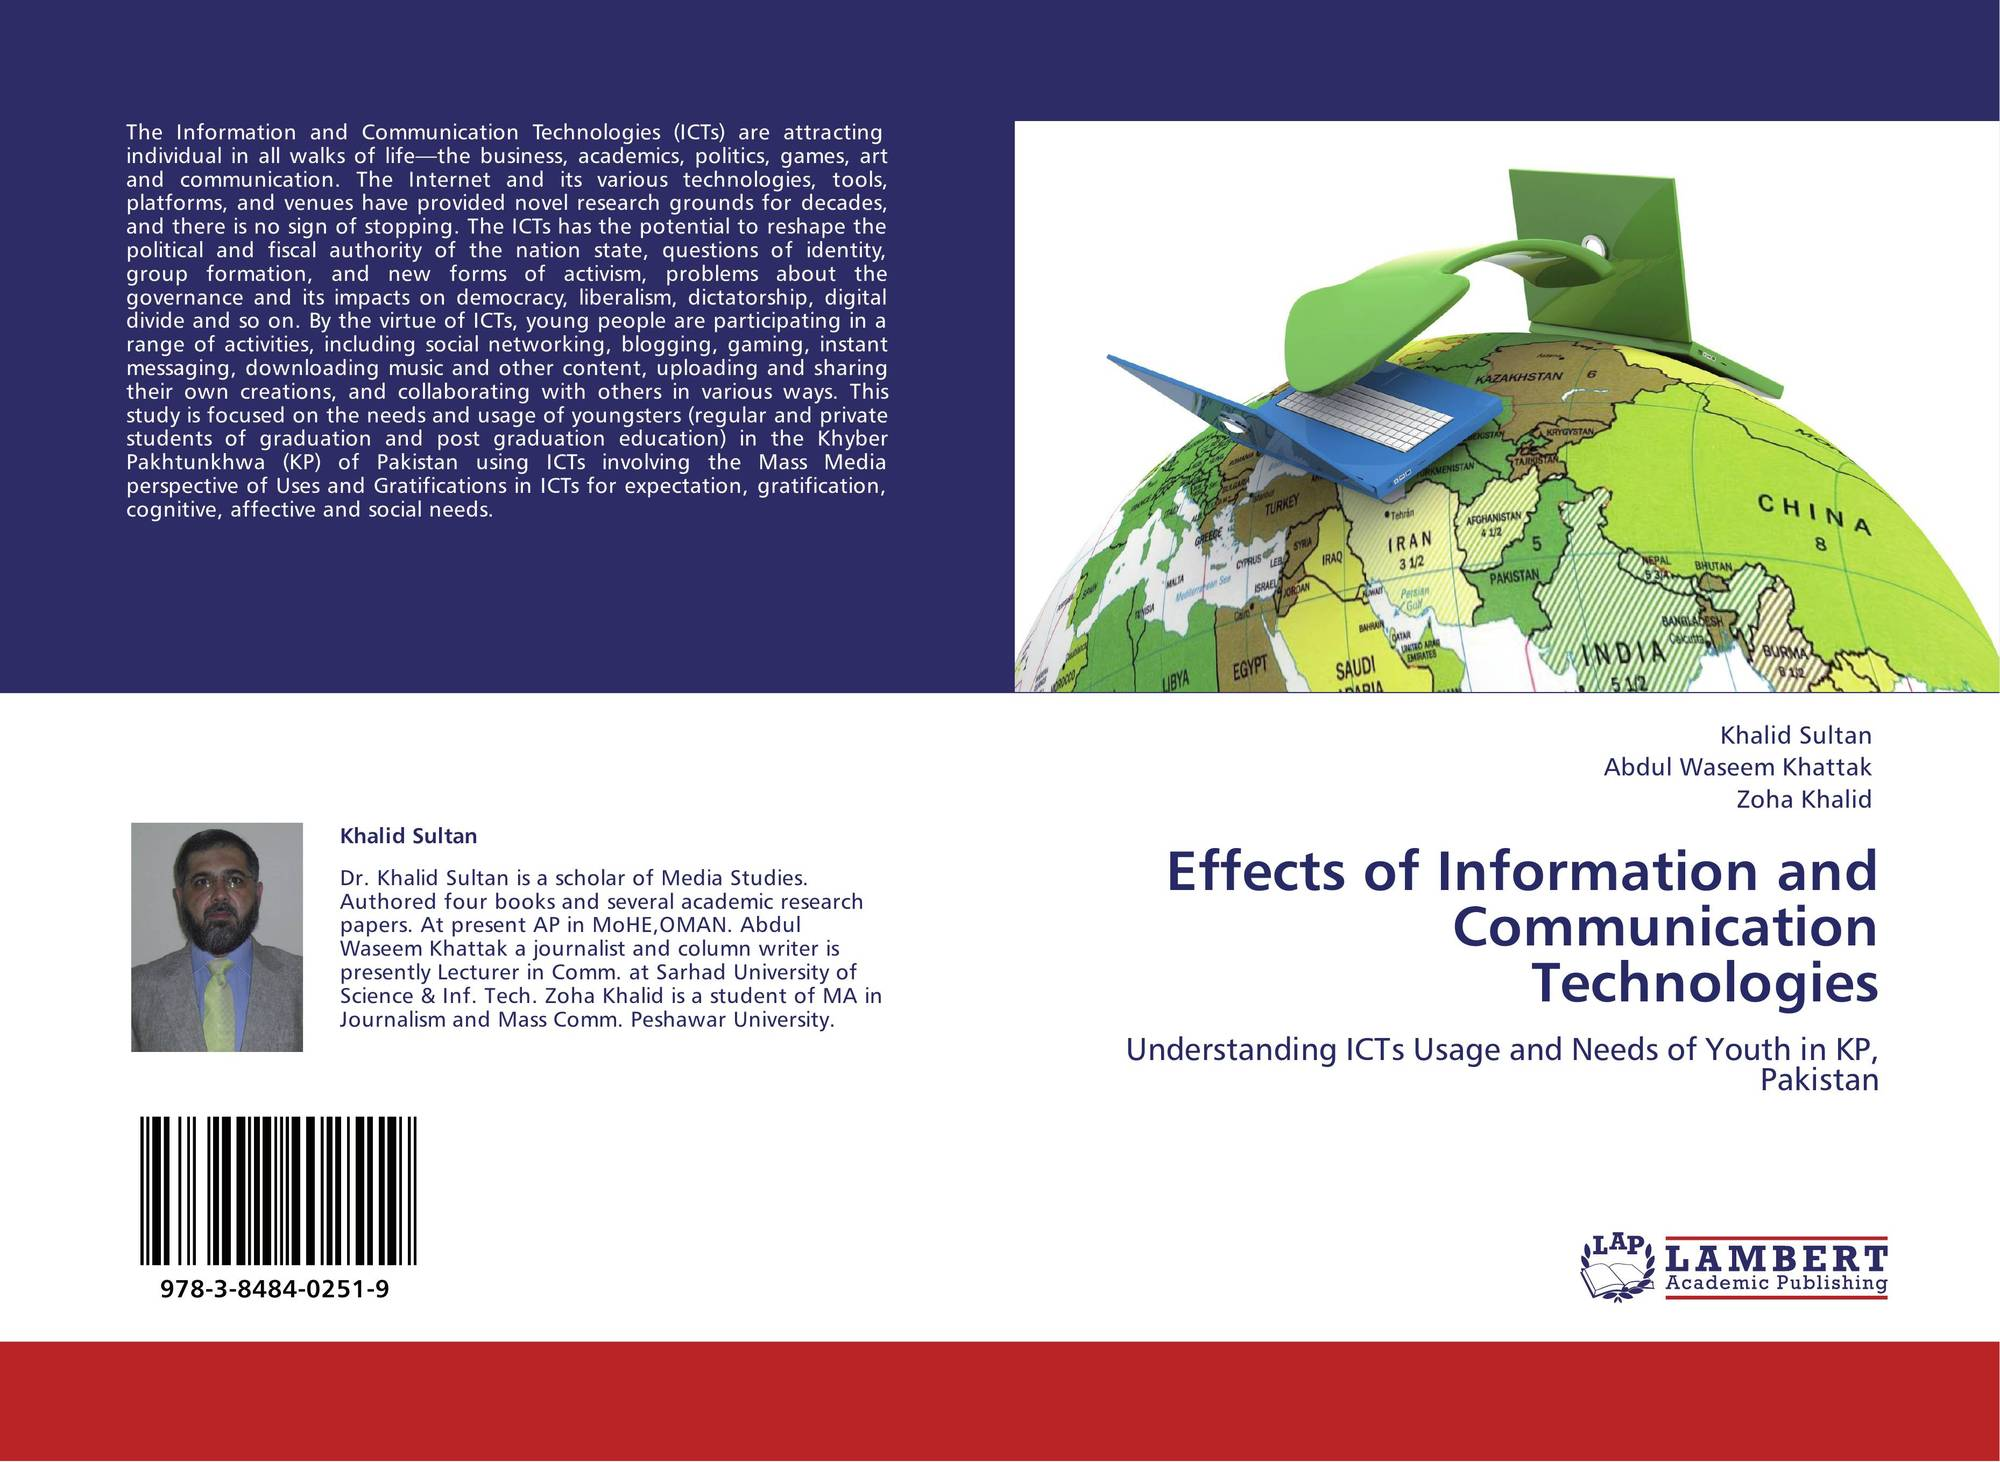 40427 human rights and risks in the digital era: globalization and the effects of information technologies